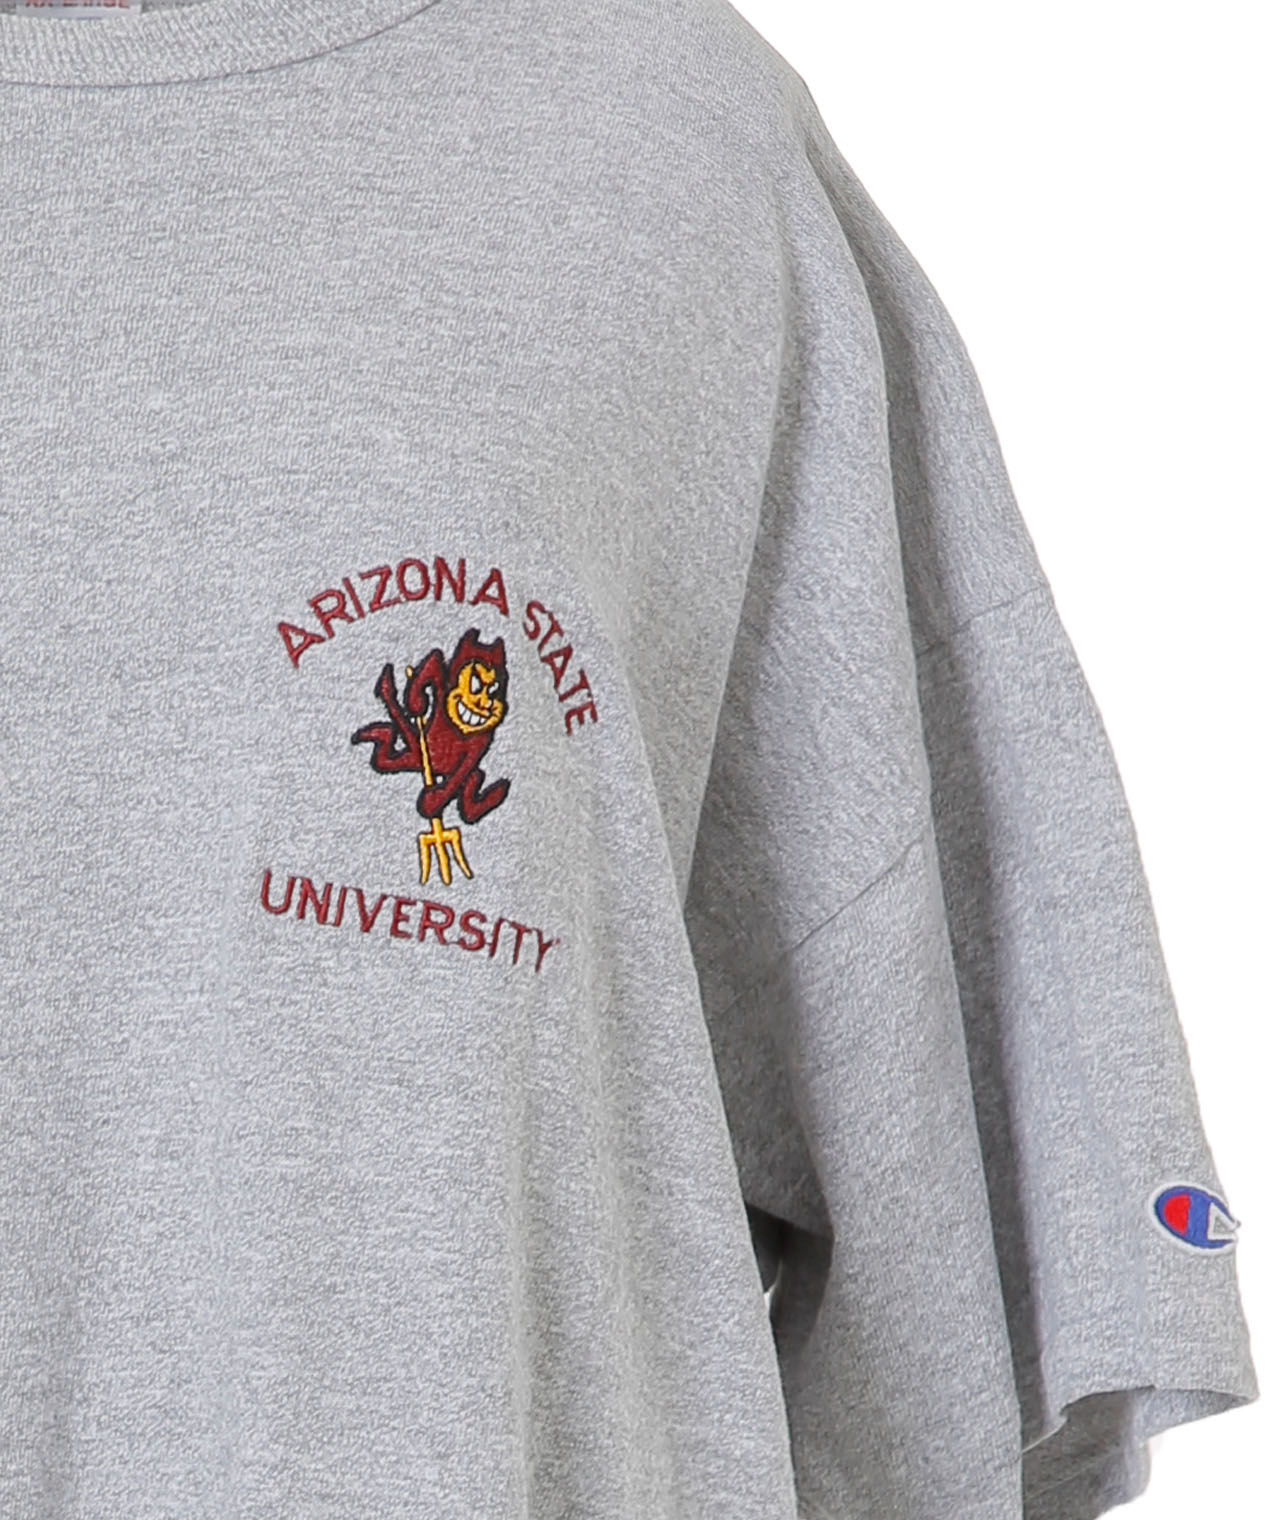 USED/CHAMPION ARIZONA STATE Tシャツ 詳細画像 グレー 1